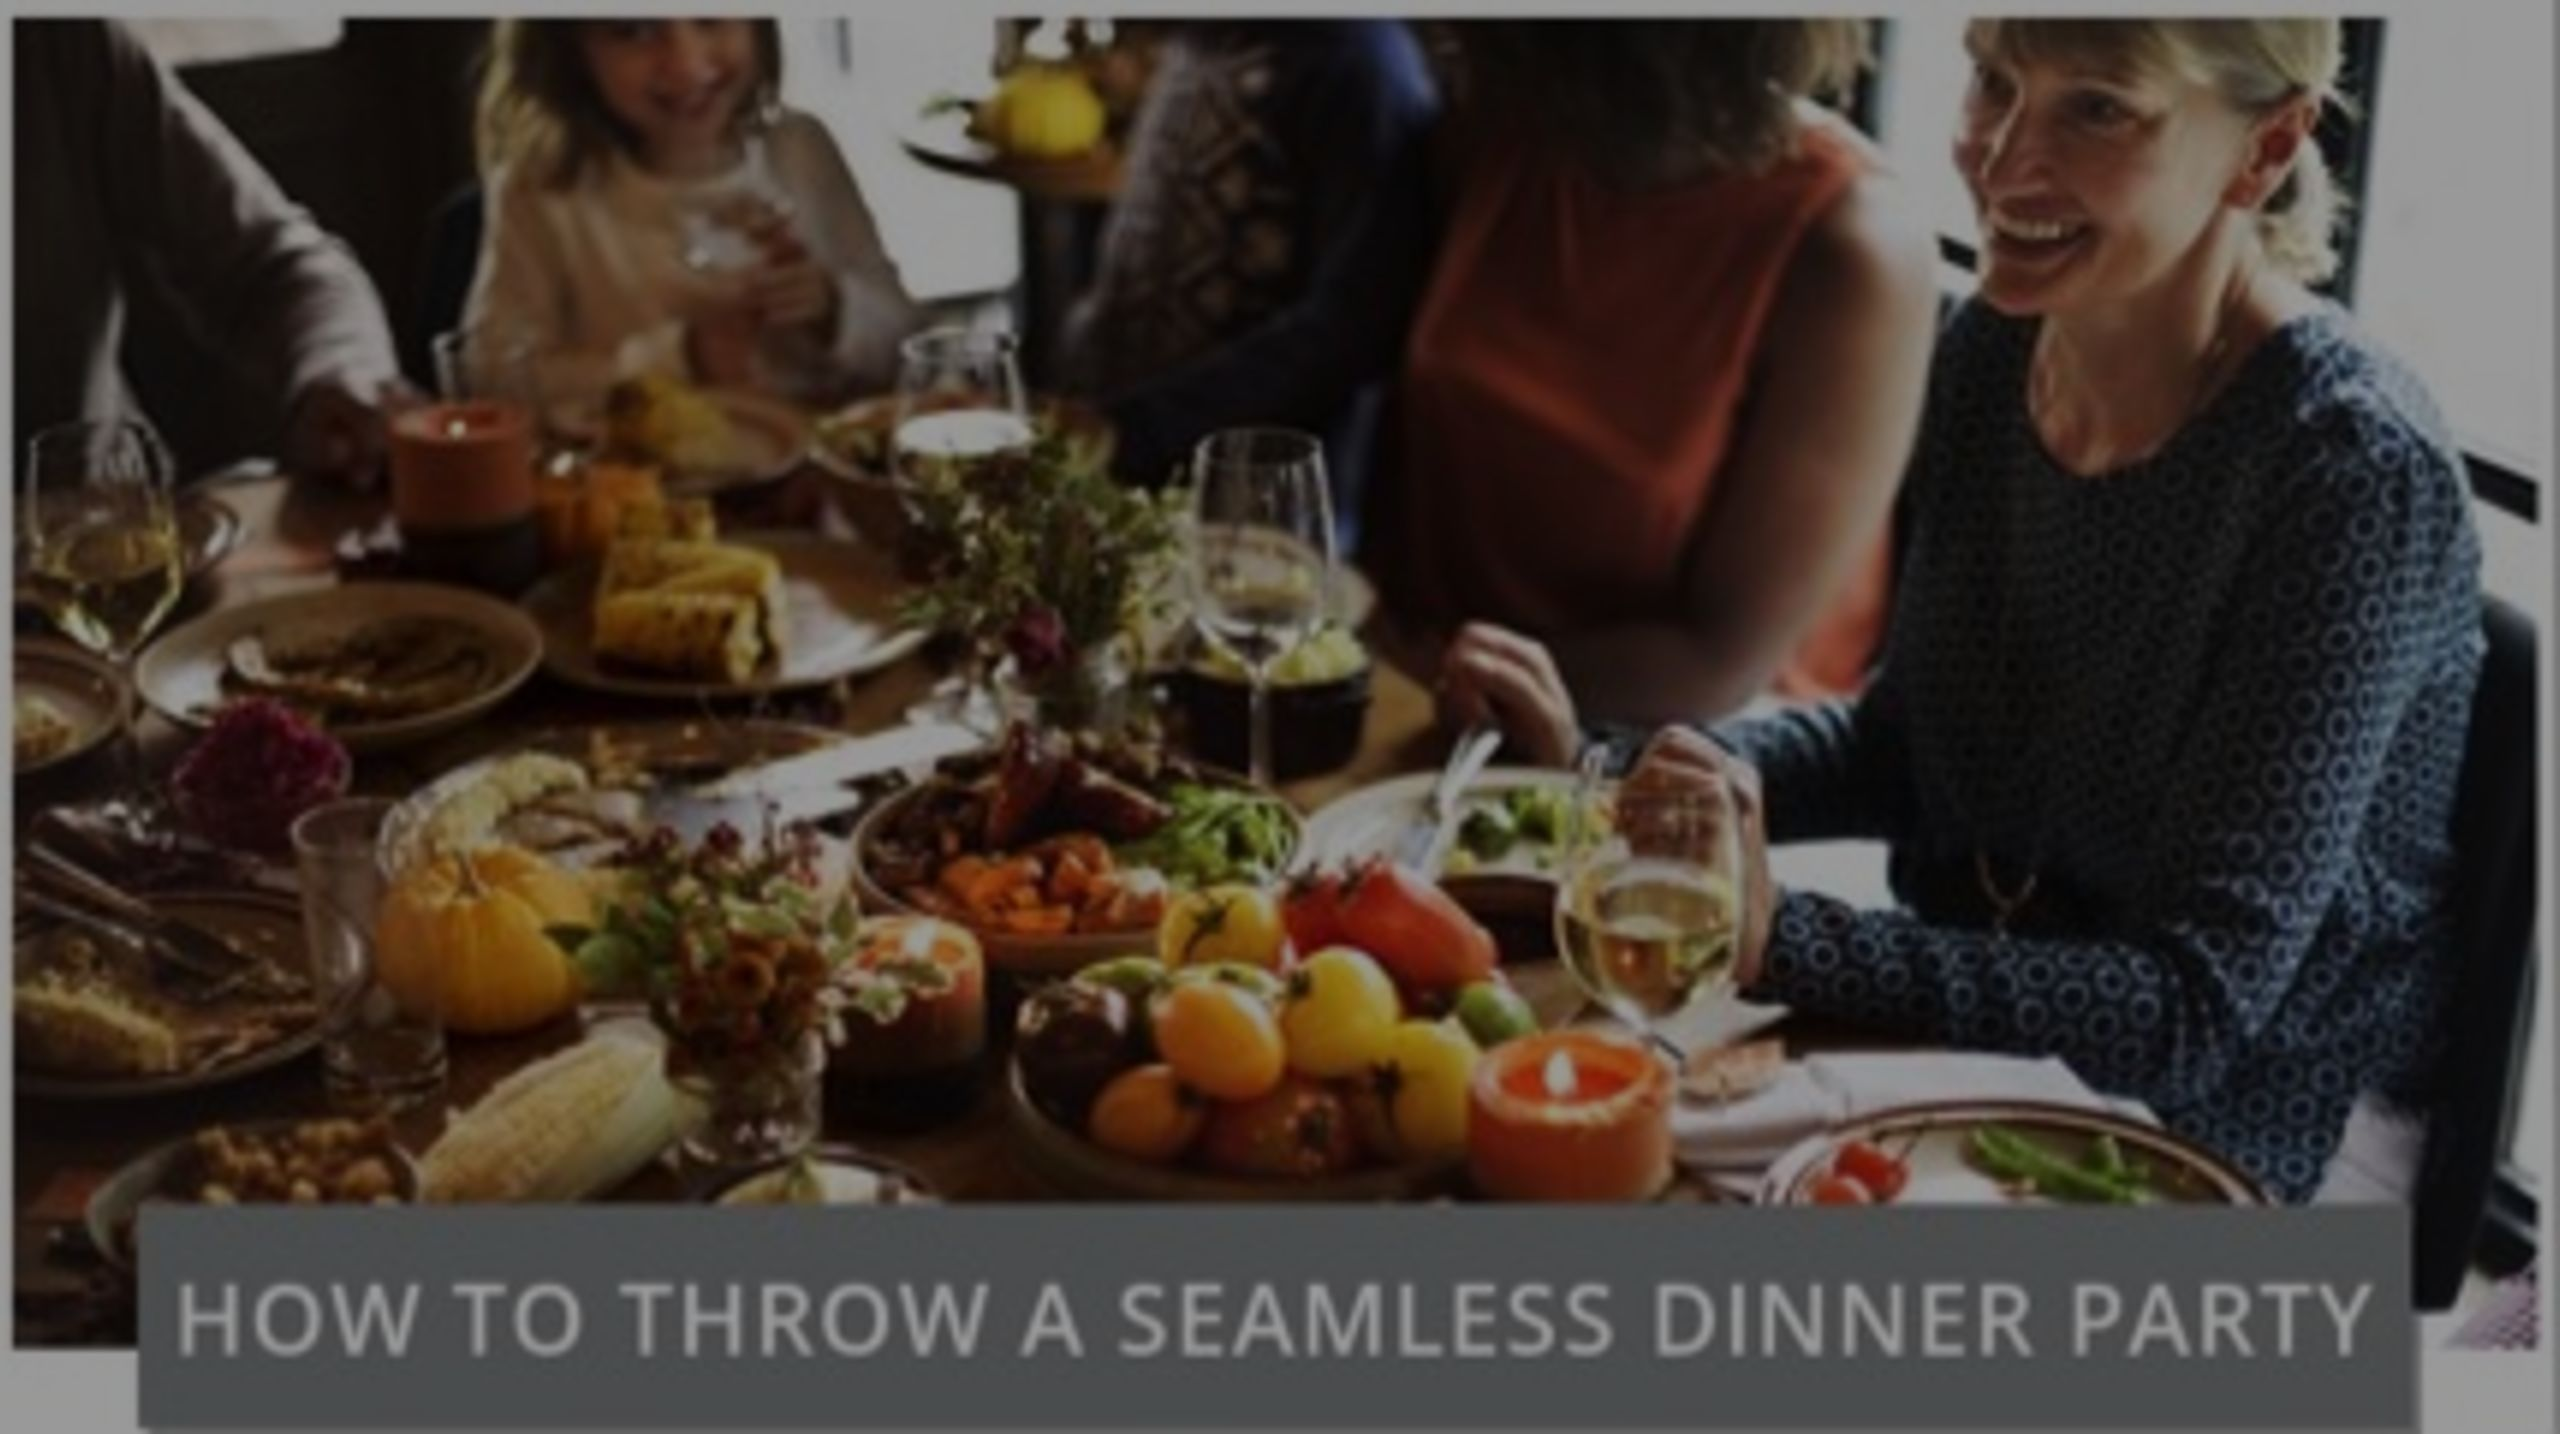 3 Tips for a Stress-Free Dinner Party